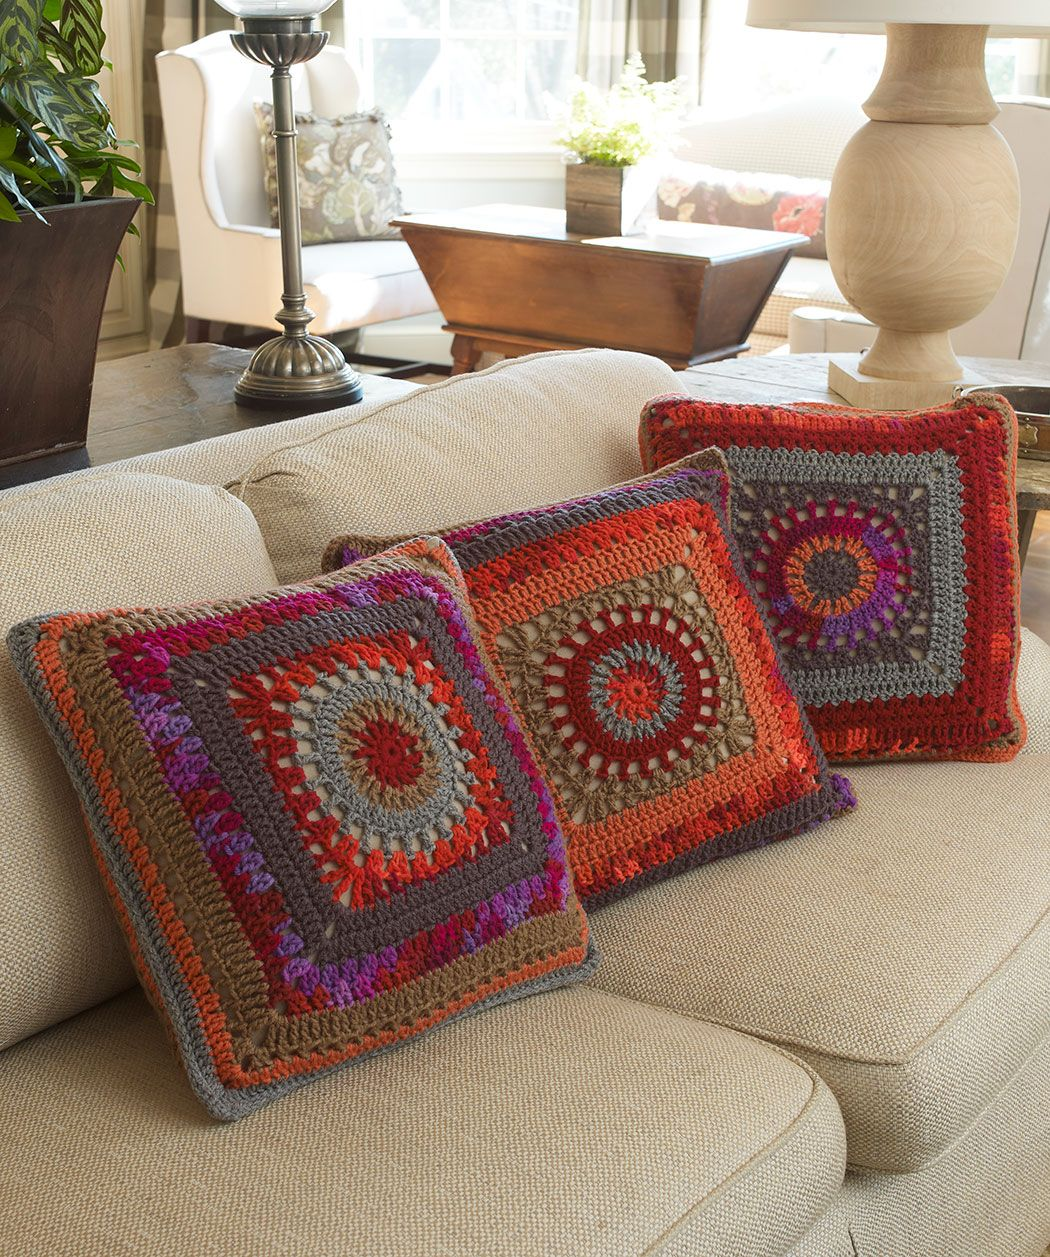 Circle in the square pillows crochet pattern redheartyarns circle in the square pillows crochet pattern redheartyarns crochet bankloansurffo Choice Image